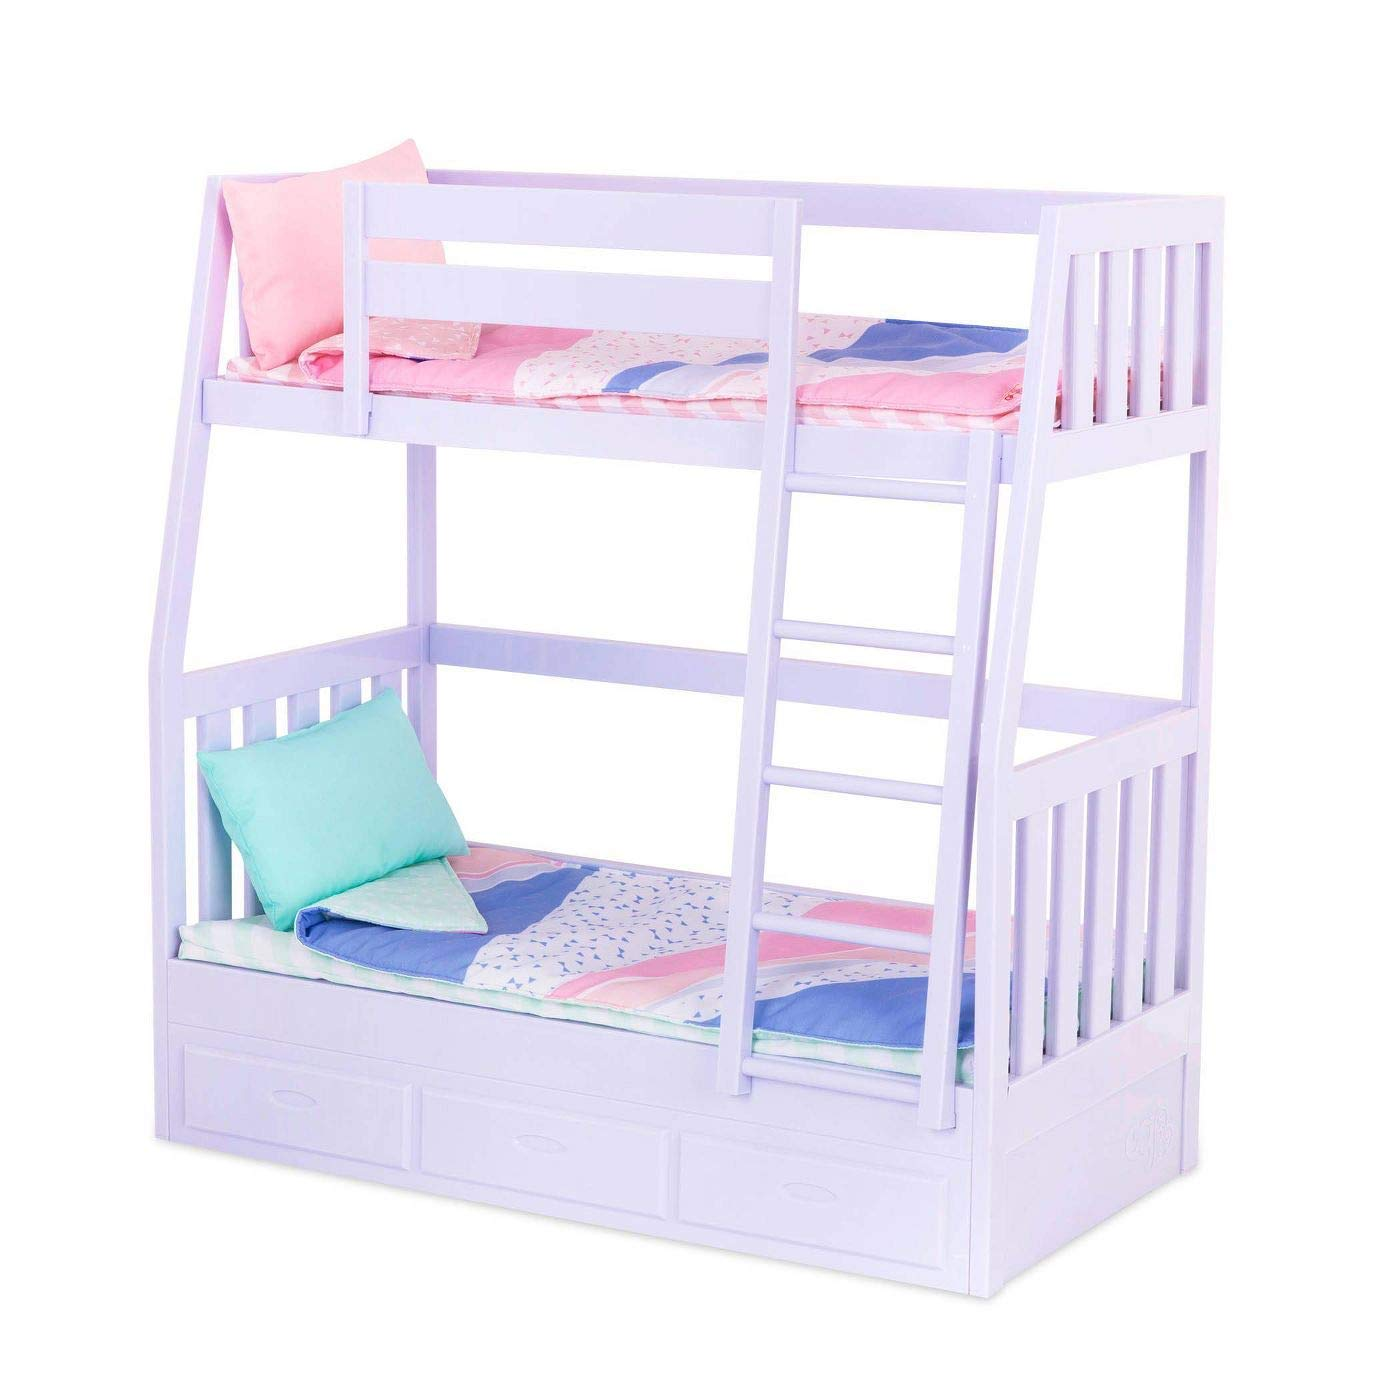 Our Generation 70 37882z Bunk Bed Toy Home Accessories Set Lilac For A 18 Inch 46 Cm Doll Buy Online At Best Price In Uae Amazon Ae